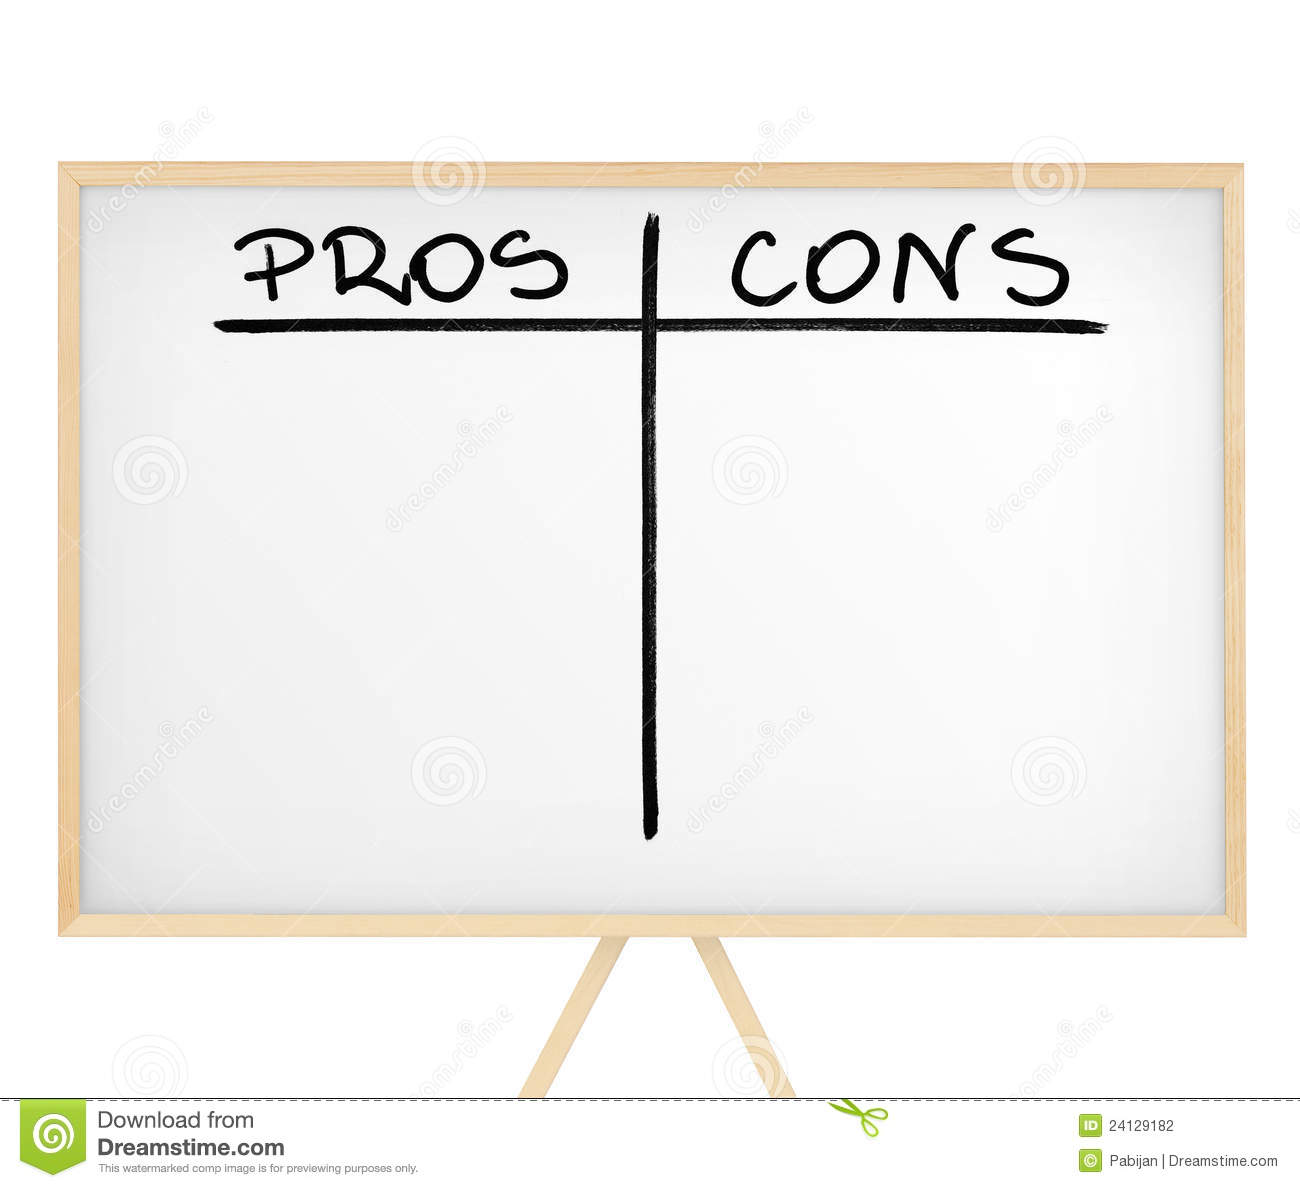 Image result for pros and cons table